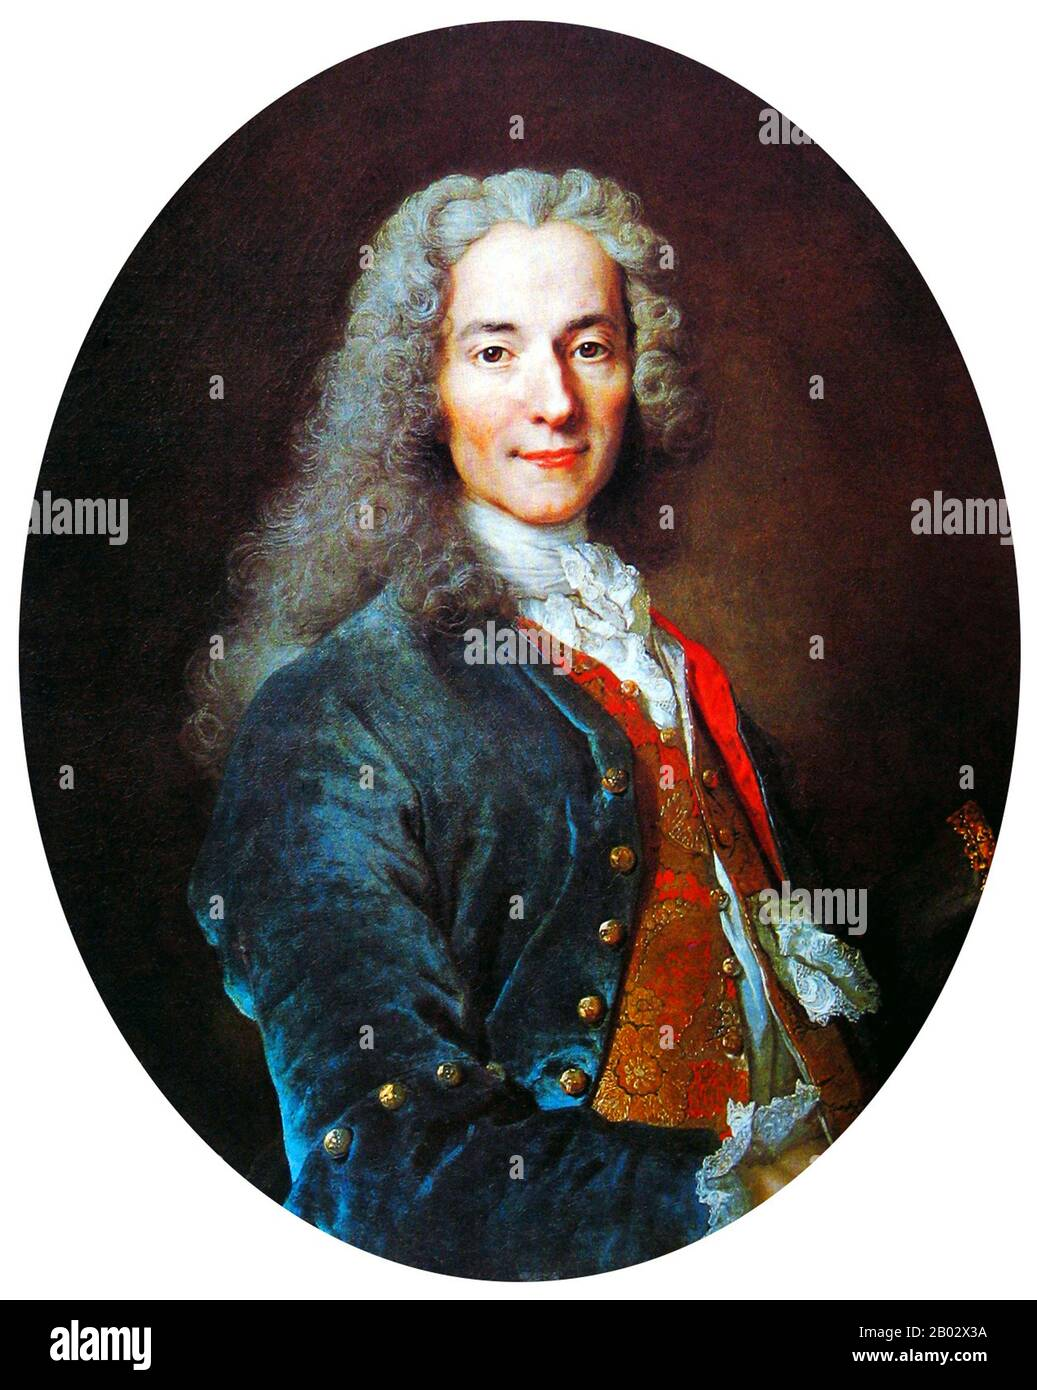 François-Marie Arouet (21 November 1694 – 30 May 1778), known by his nom de plume Voltaire, was a French Enlightenment writer, historian, and philosopher famous for his wit, his attacks on the established Catholic Church, and his advocacy of freedom of religion, freedom of expression, and separation of church and state.  Voltaire was a versatile writer, producing works in almost every literary form, including plays, poems, novels, essays, and historical and scientific works. He wrote more than 20,000 letters and more than 2,000 books and pamphlets. He was an outspoken advocate, despite the ris Stock Photo